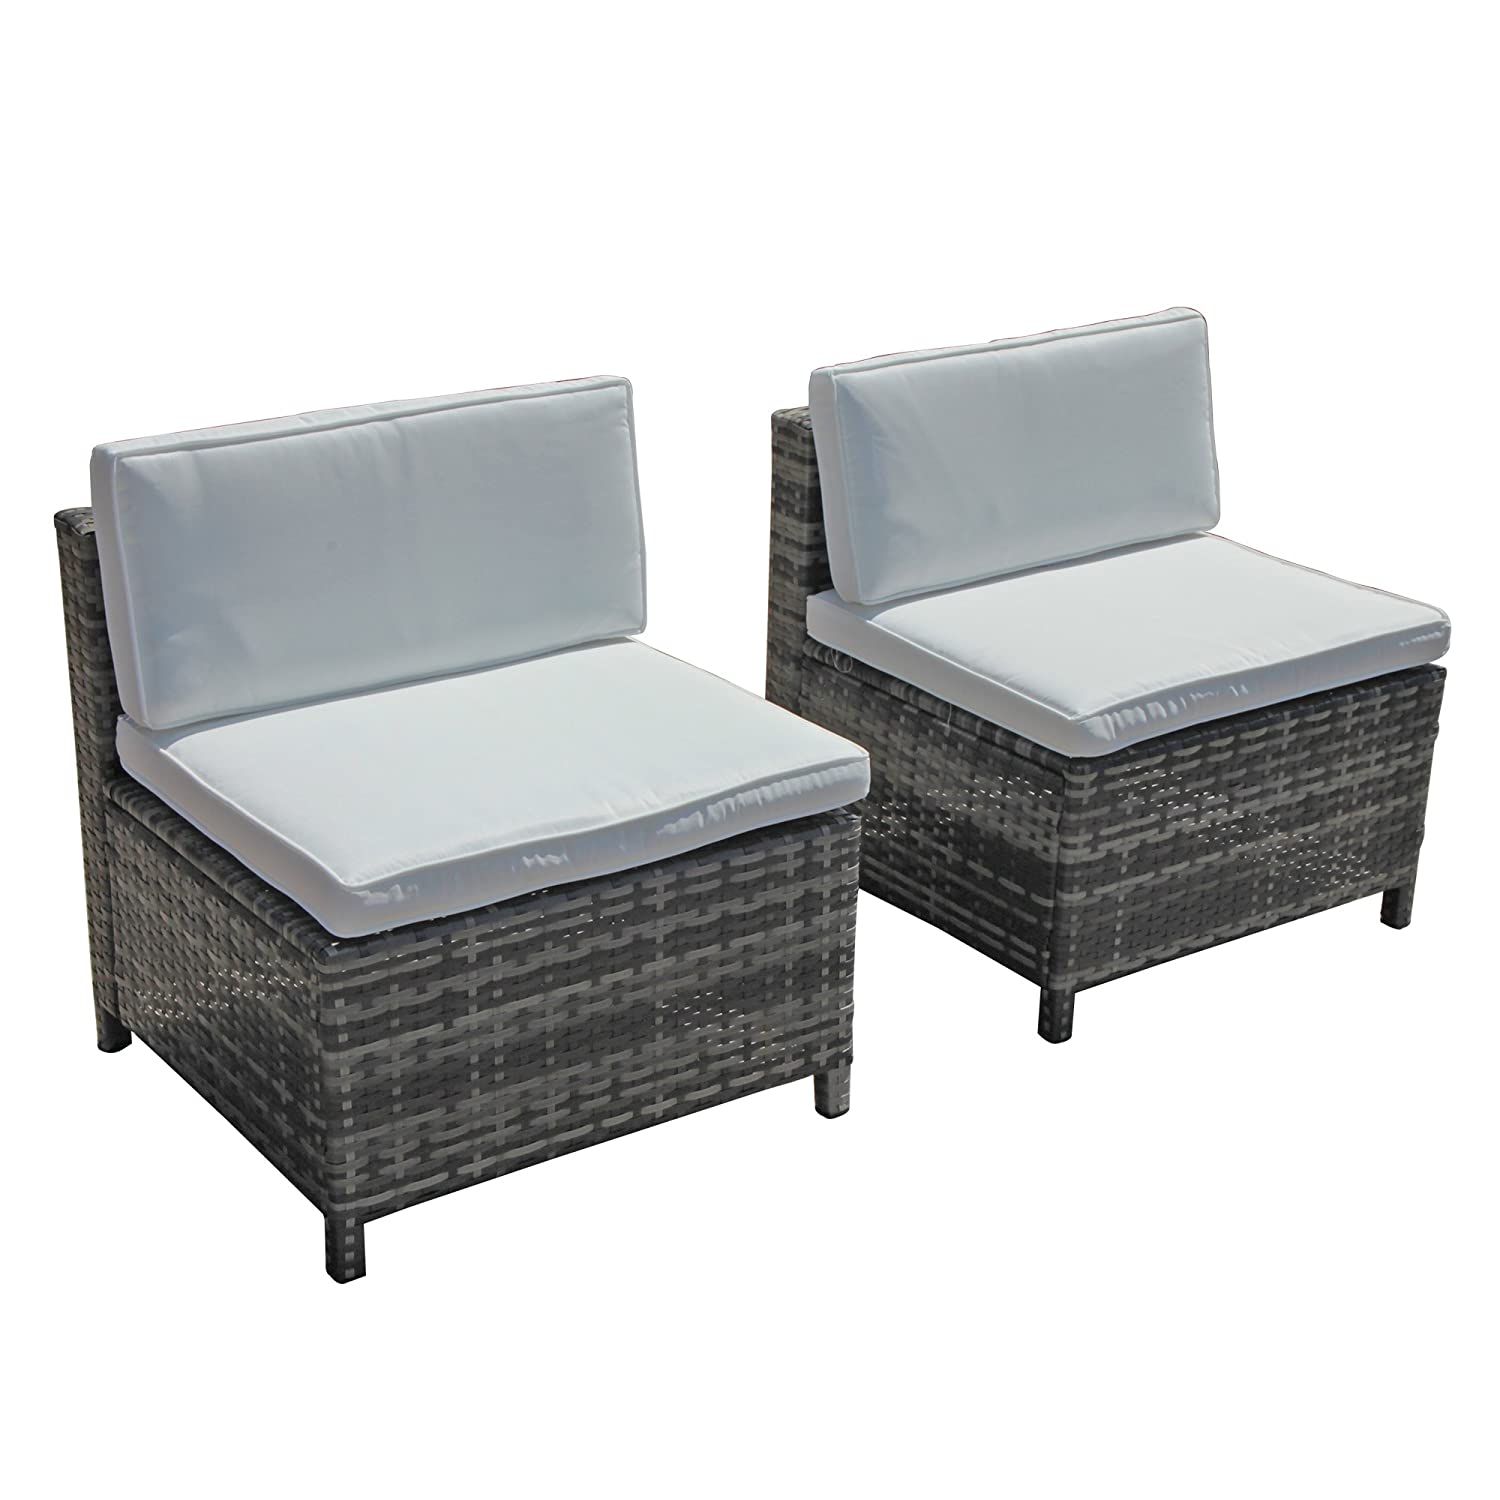 PATIORAMA Armless Chair Outdoor Furniture Sectional Sofa Set All-Weather Grey PE Wicker with Cushions Patio, Backyard, Pool Steel Frame